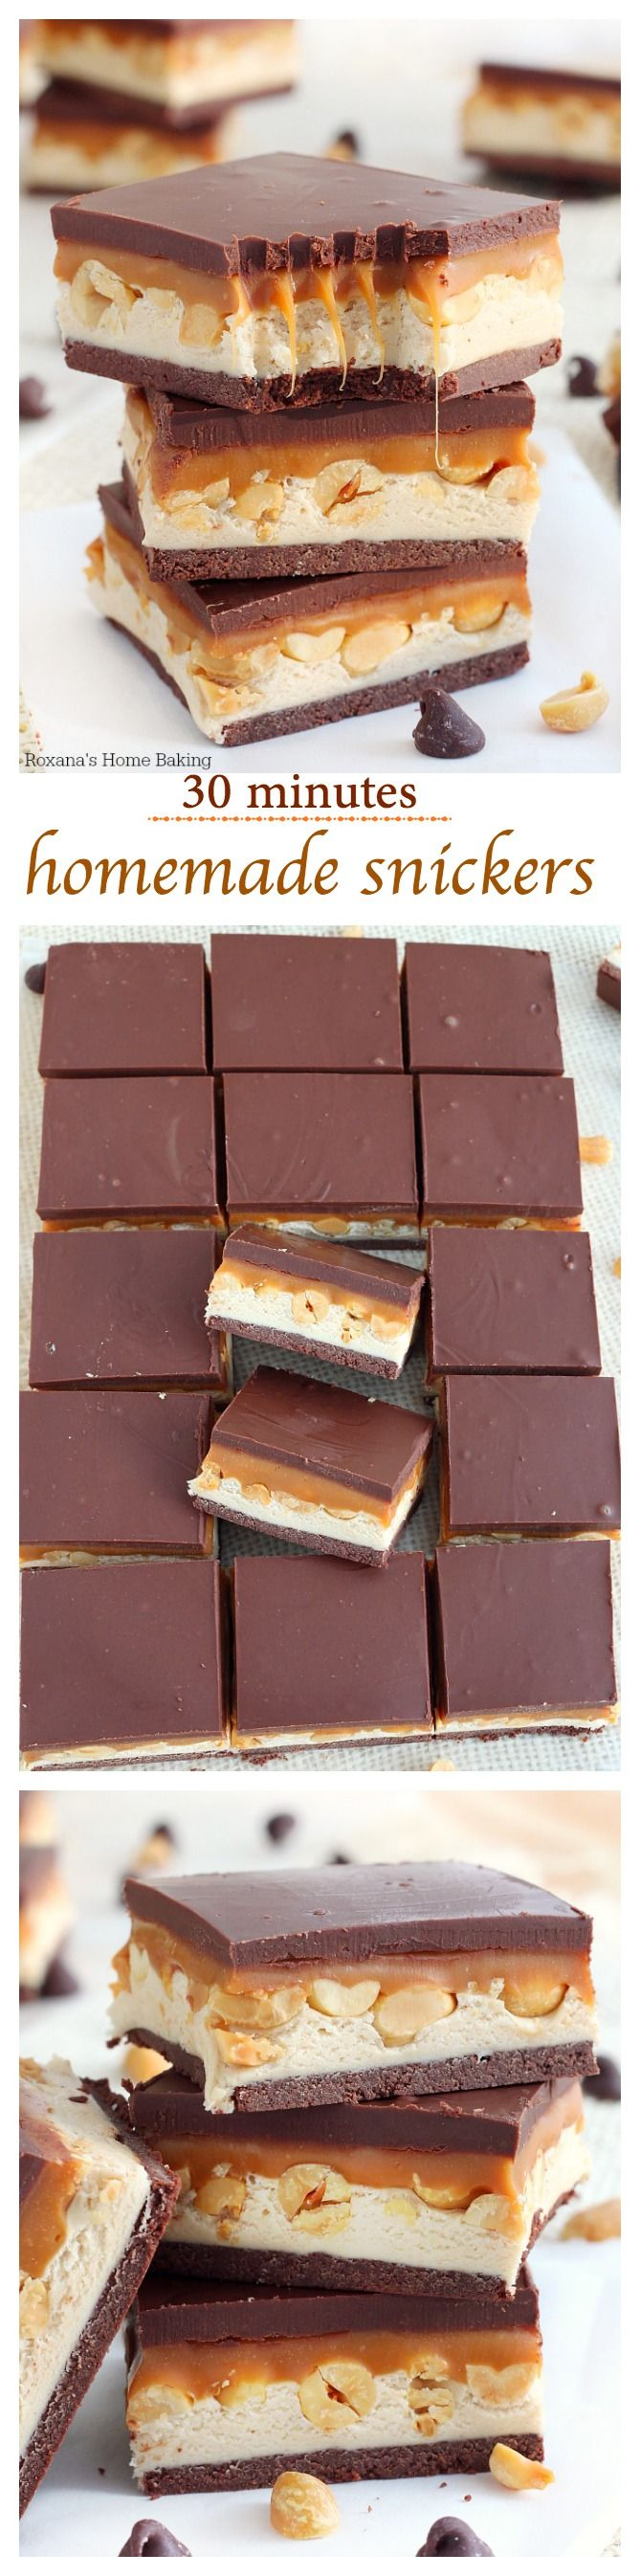 Nougat, peanuts and caramel sandwiched between two chocolate layers, these Homemade Snickers Bars come together in 30 minutes tops! Faster than going to the store to buy some! @roxanasbaking